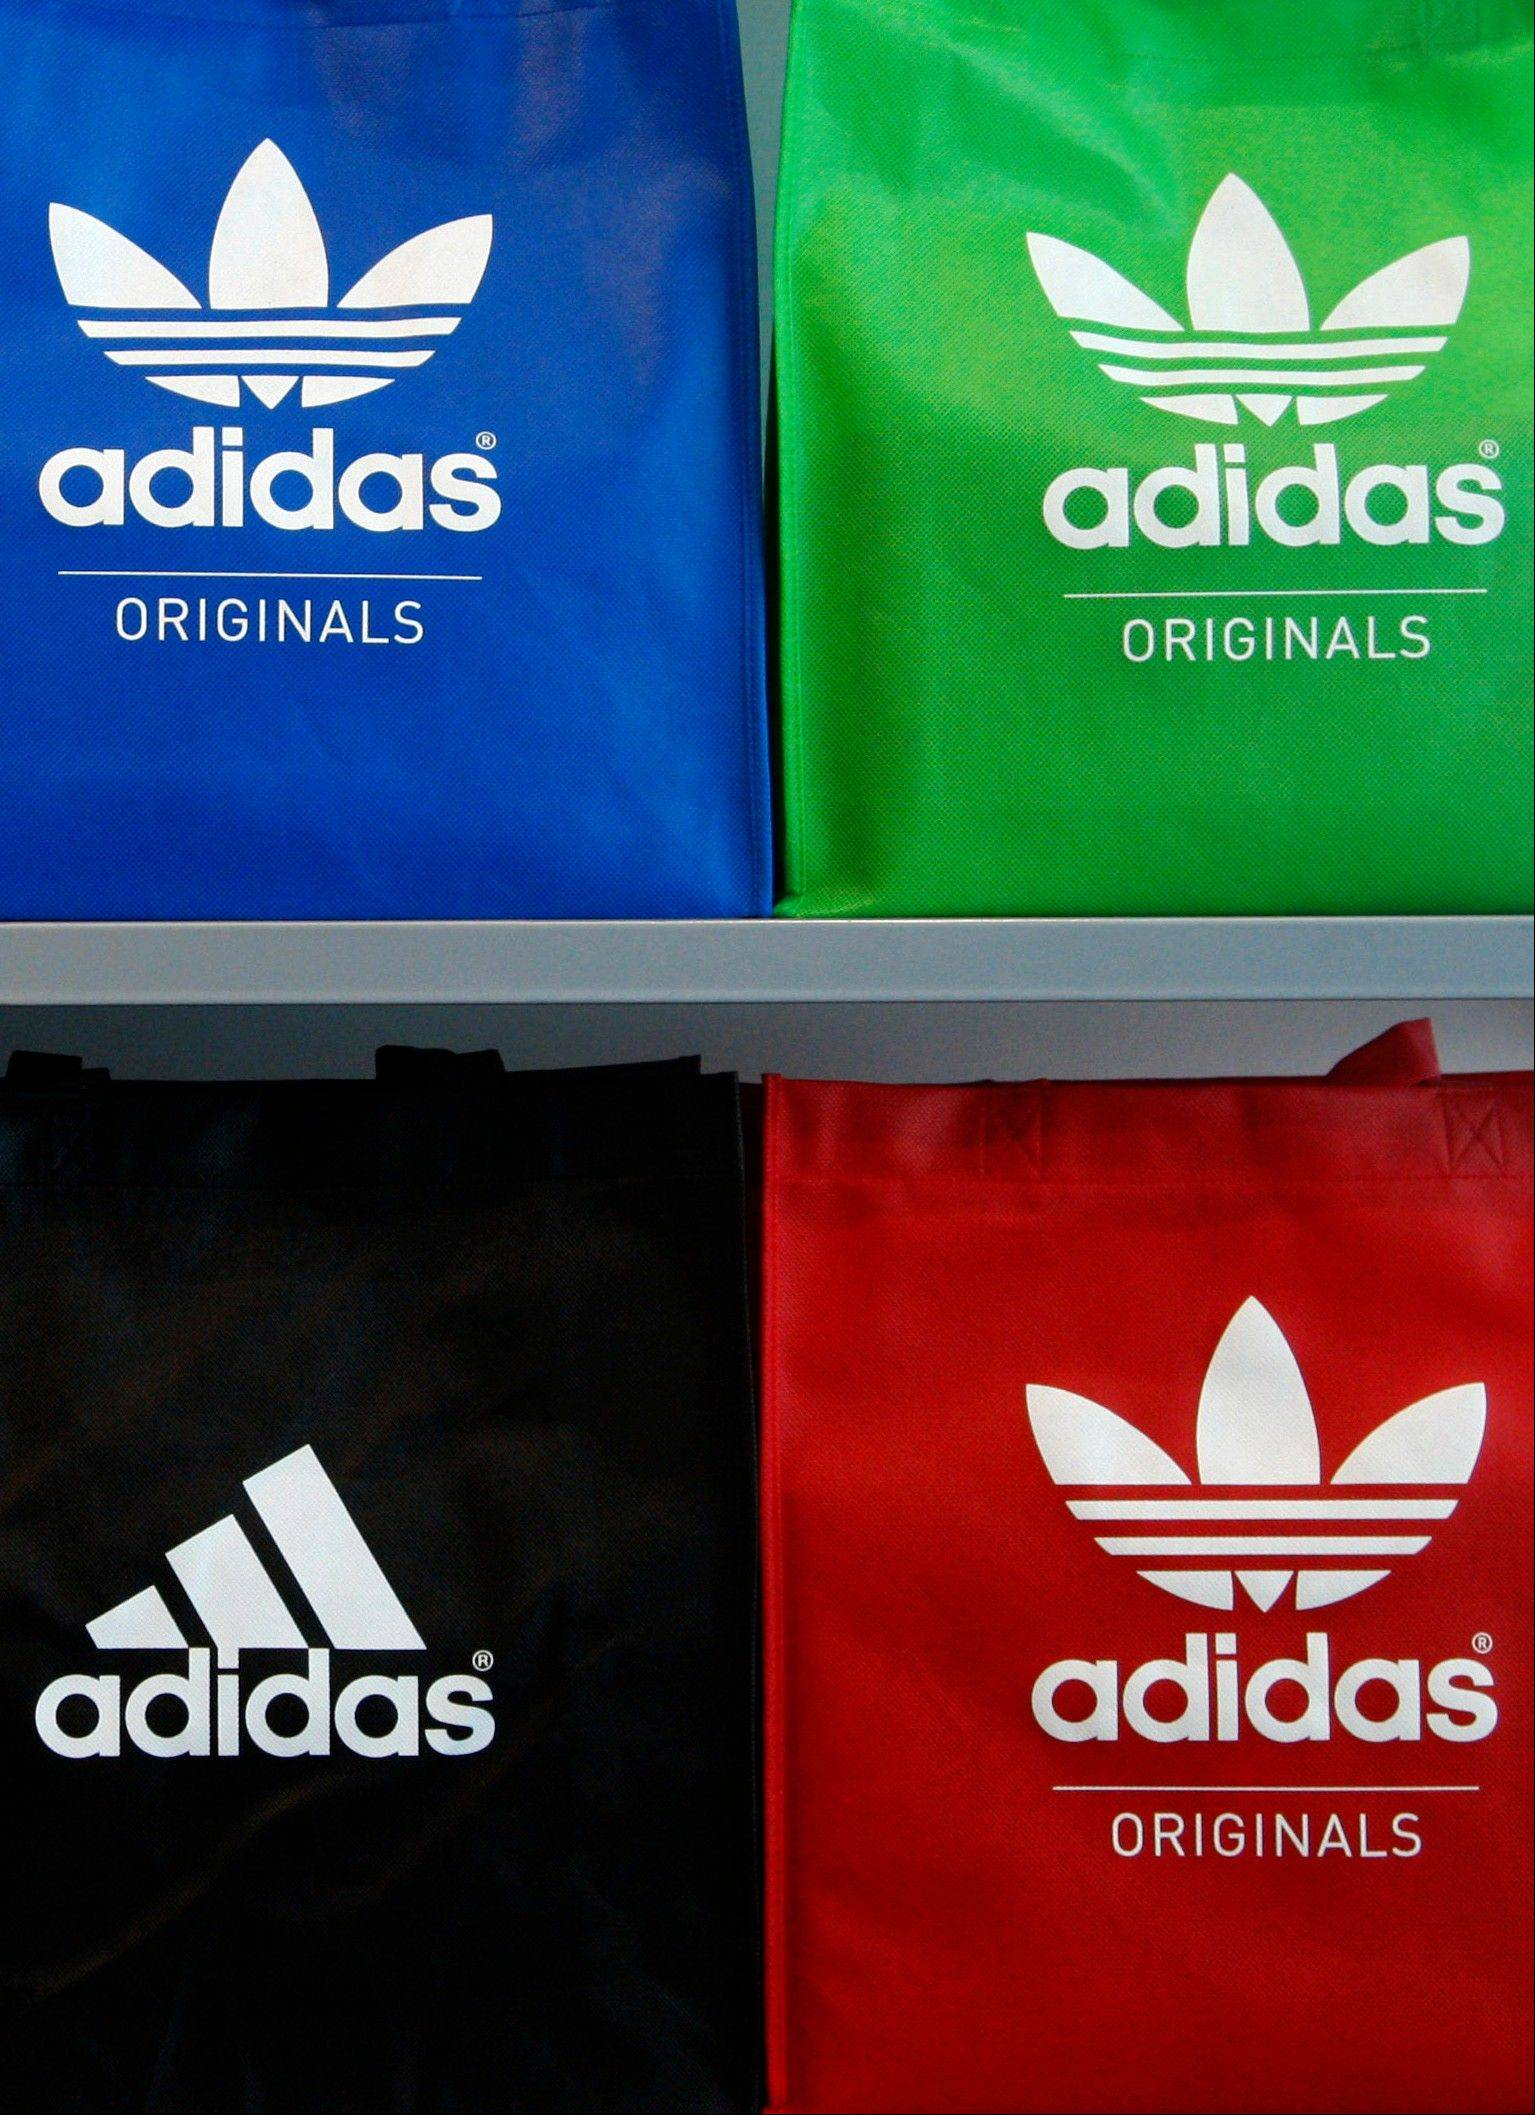 Adidas AG, the world's second-biggest sporting-goods maker, cut its sales forecast for the year on lower sales expectations for its Reebok brand.